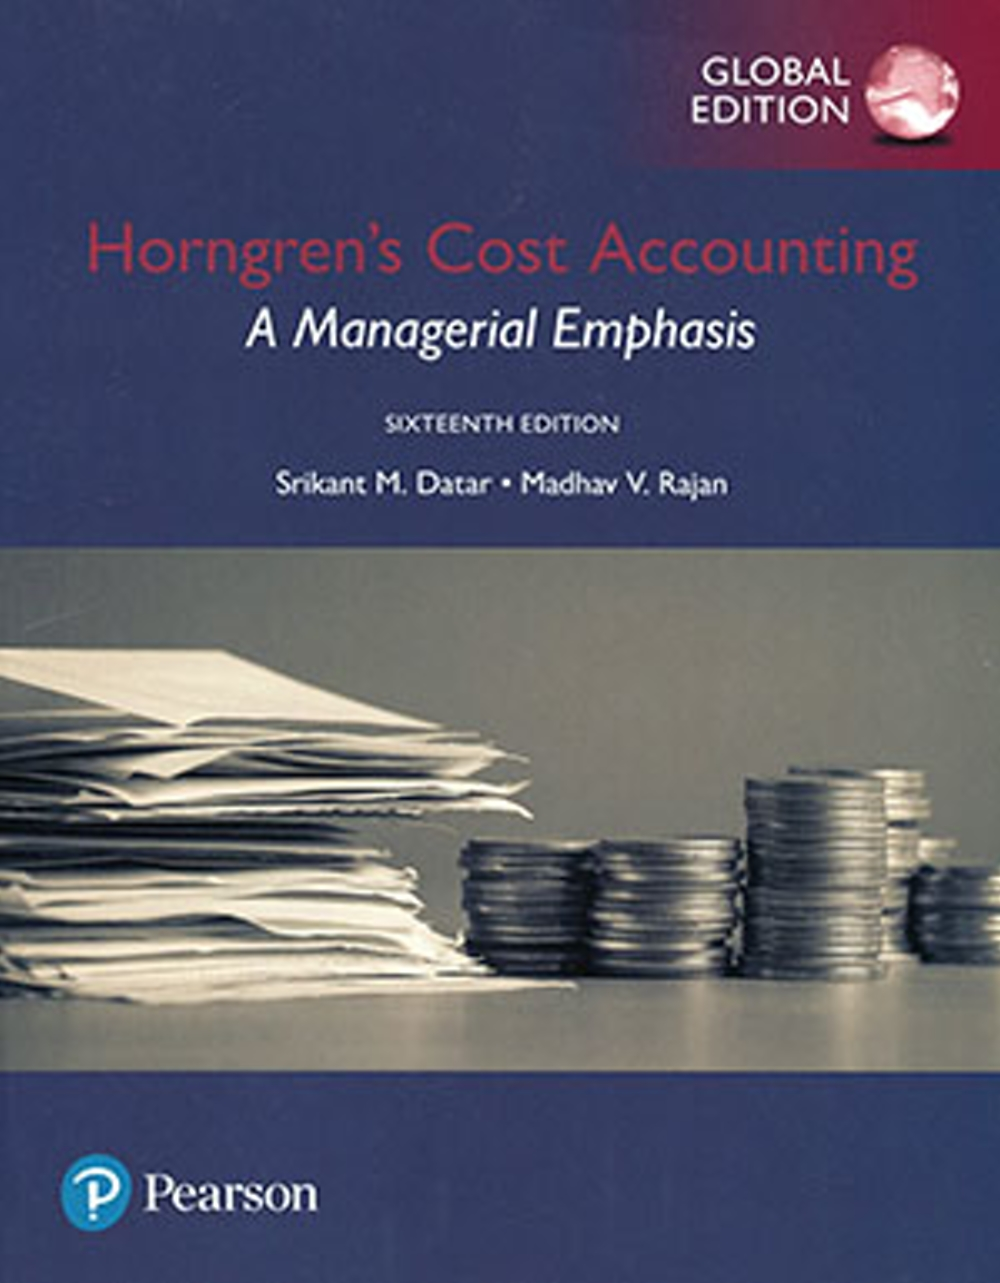 Horngren's Cost Accounting: A Managerial Emphasis (GE)16版